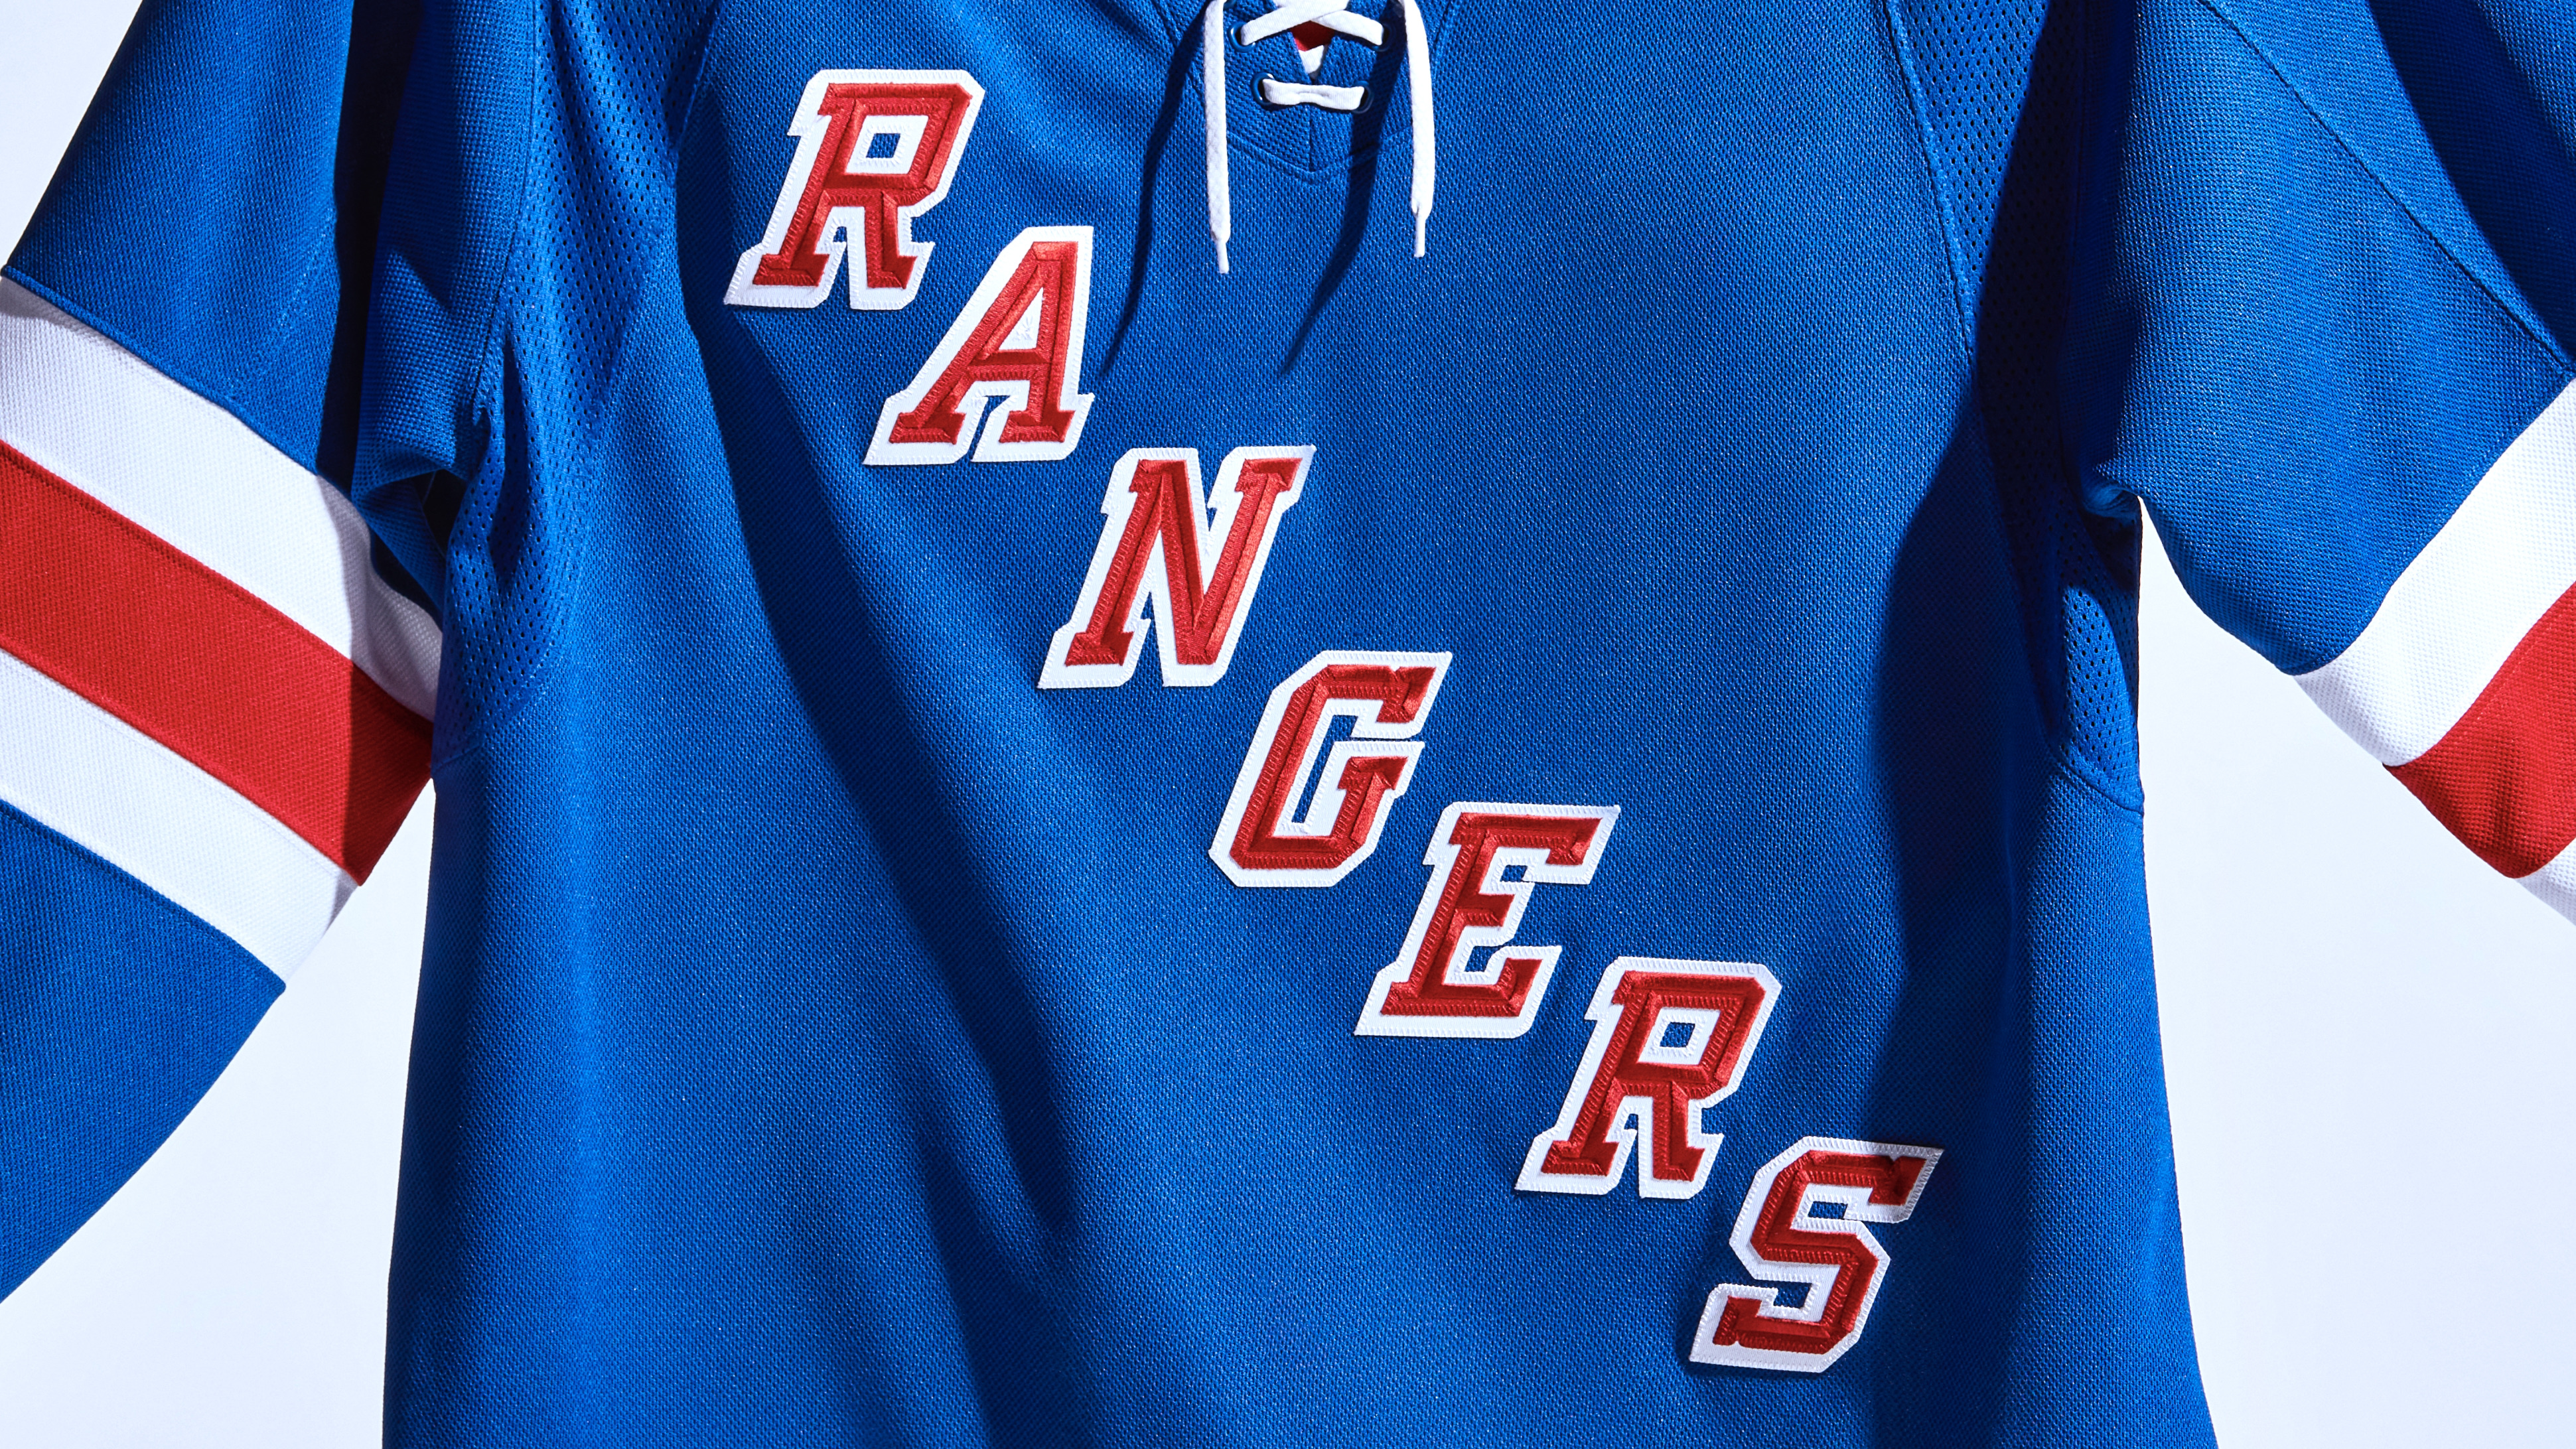 The New York Rangers home blue sweater for the 2021-22 season